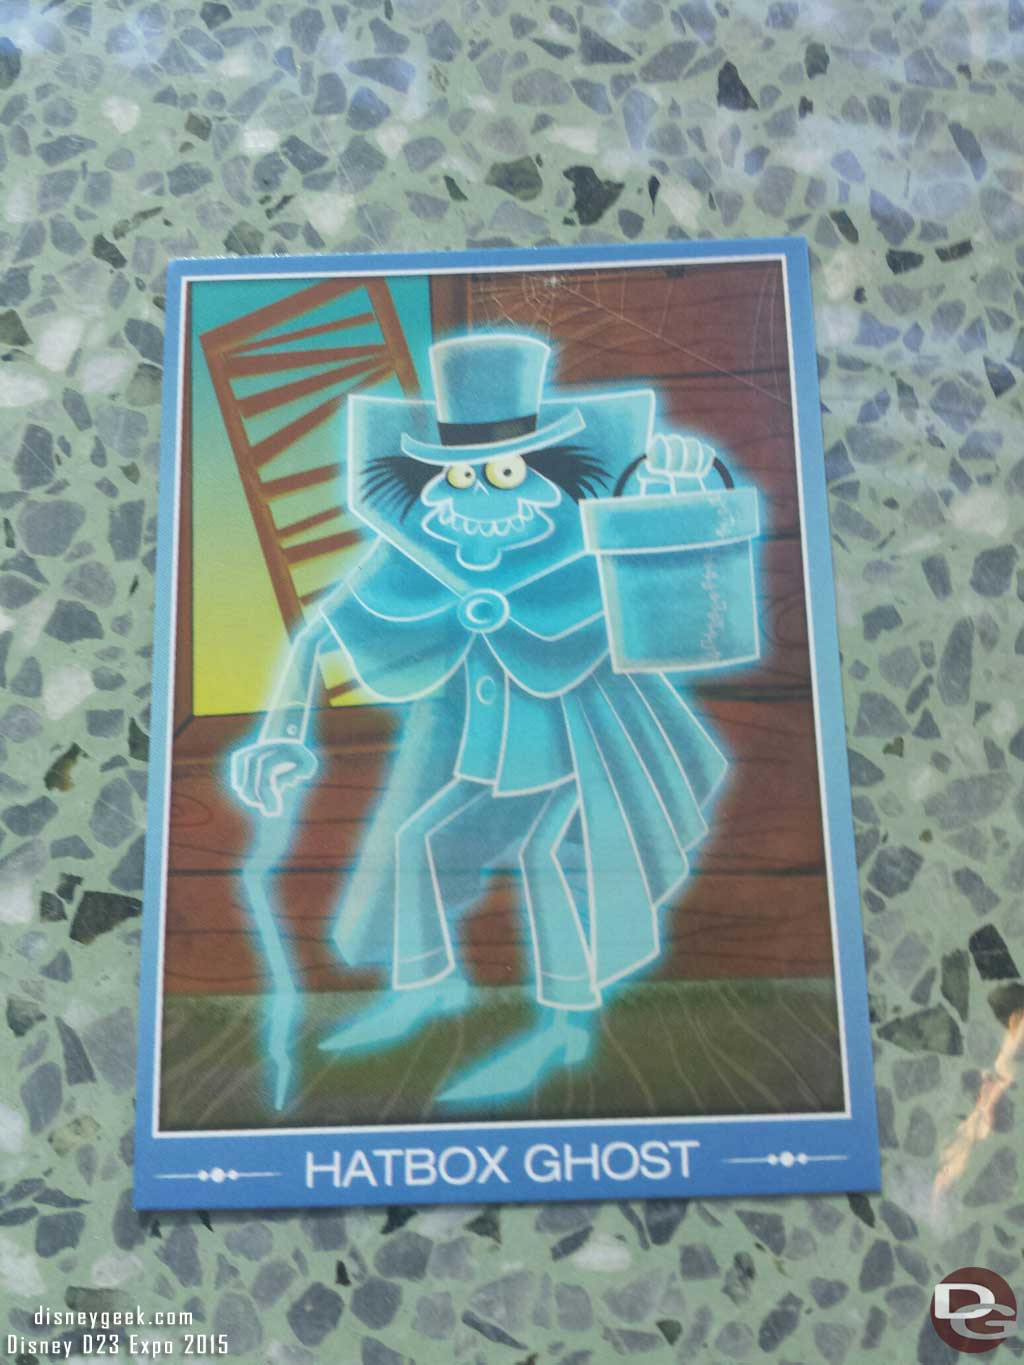 Here is the card featuring the Hatbox Ghost #D23Expo